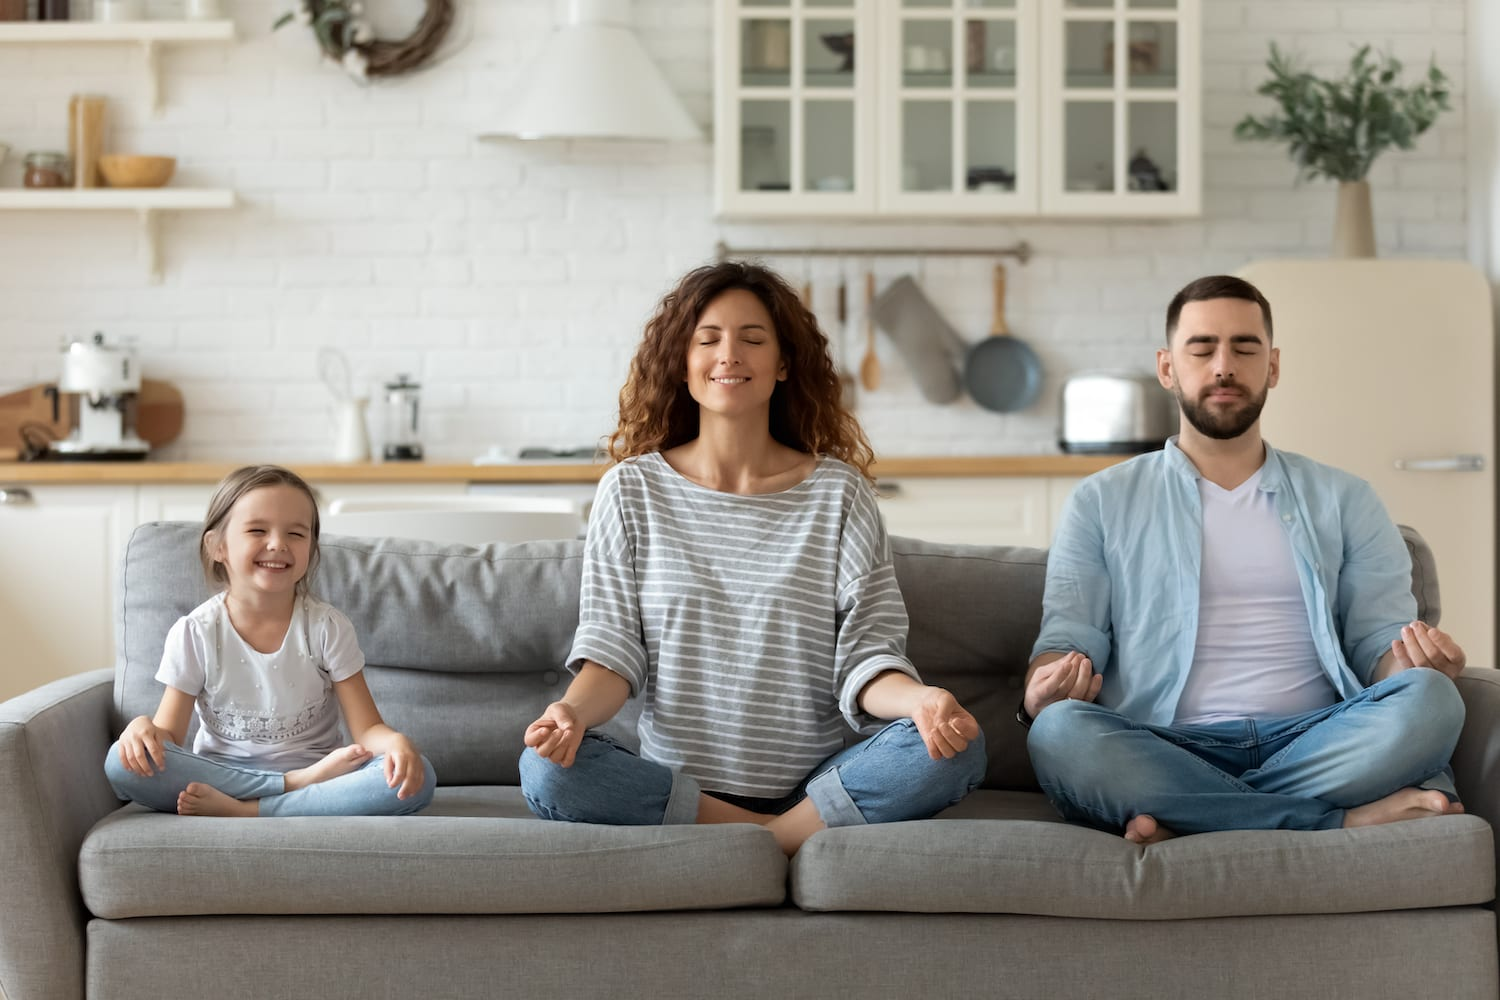 family meditating on a couch